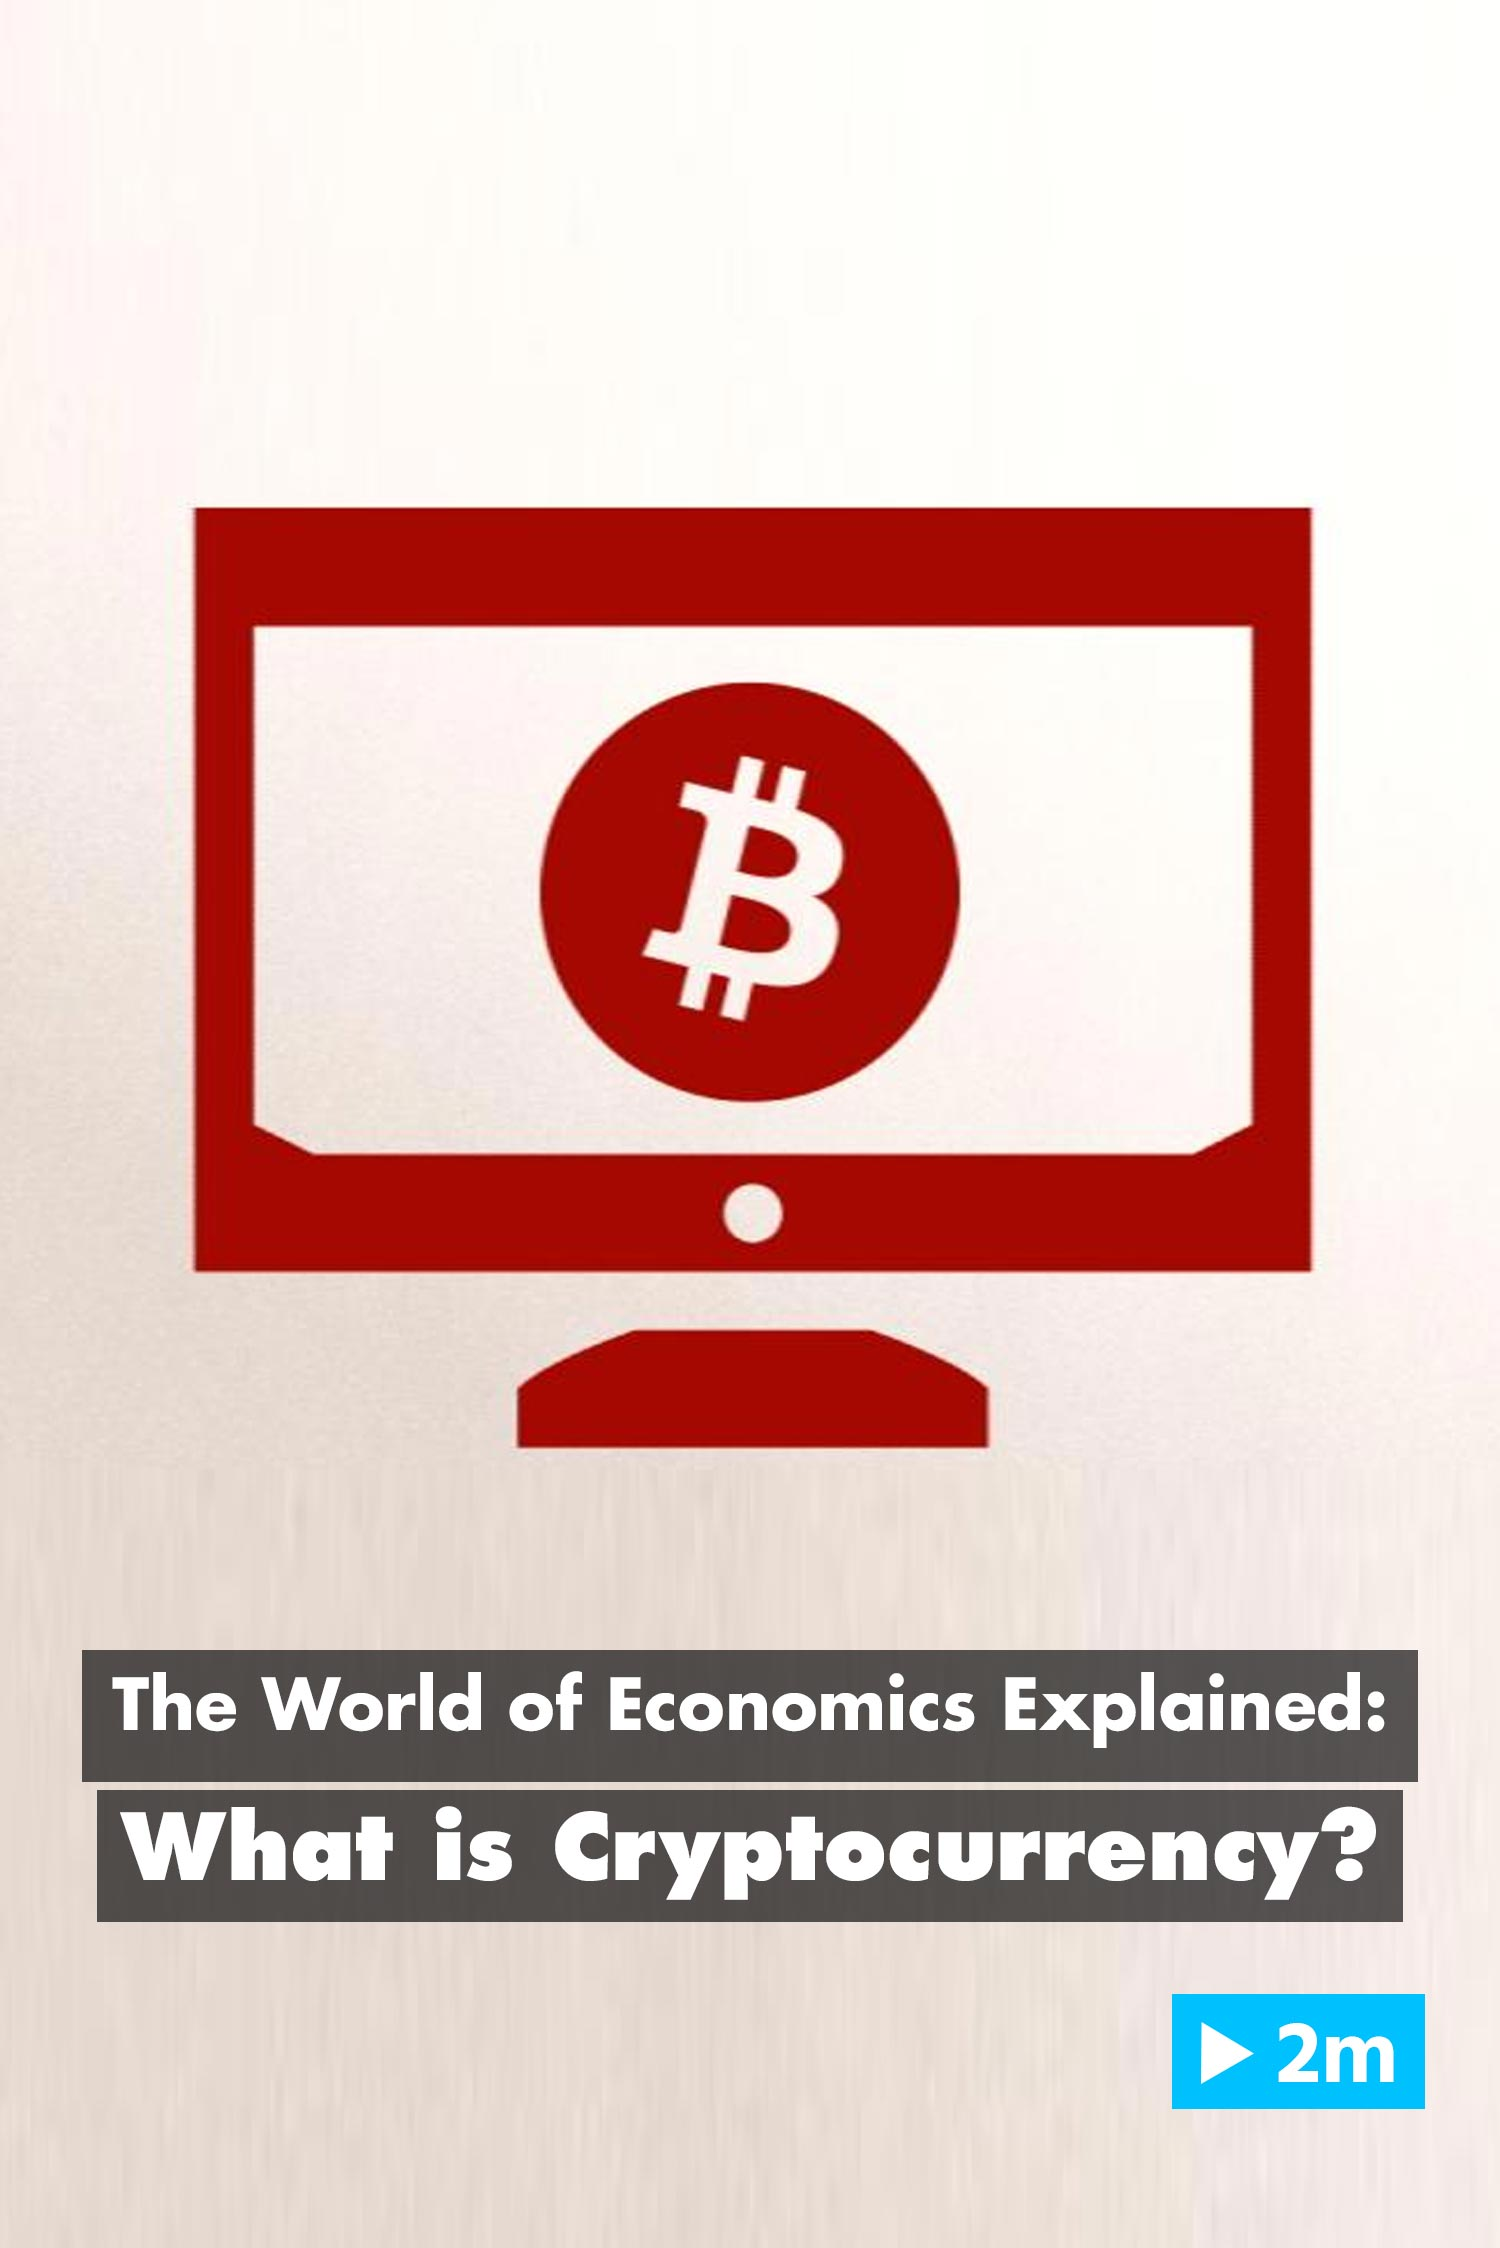 The World of Economics Explained: What is Cryptocurrency?